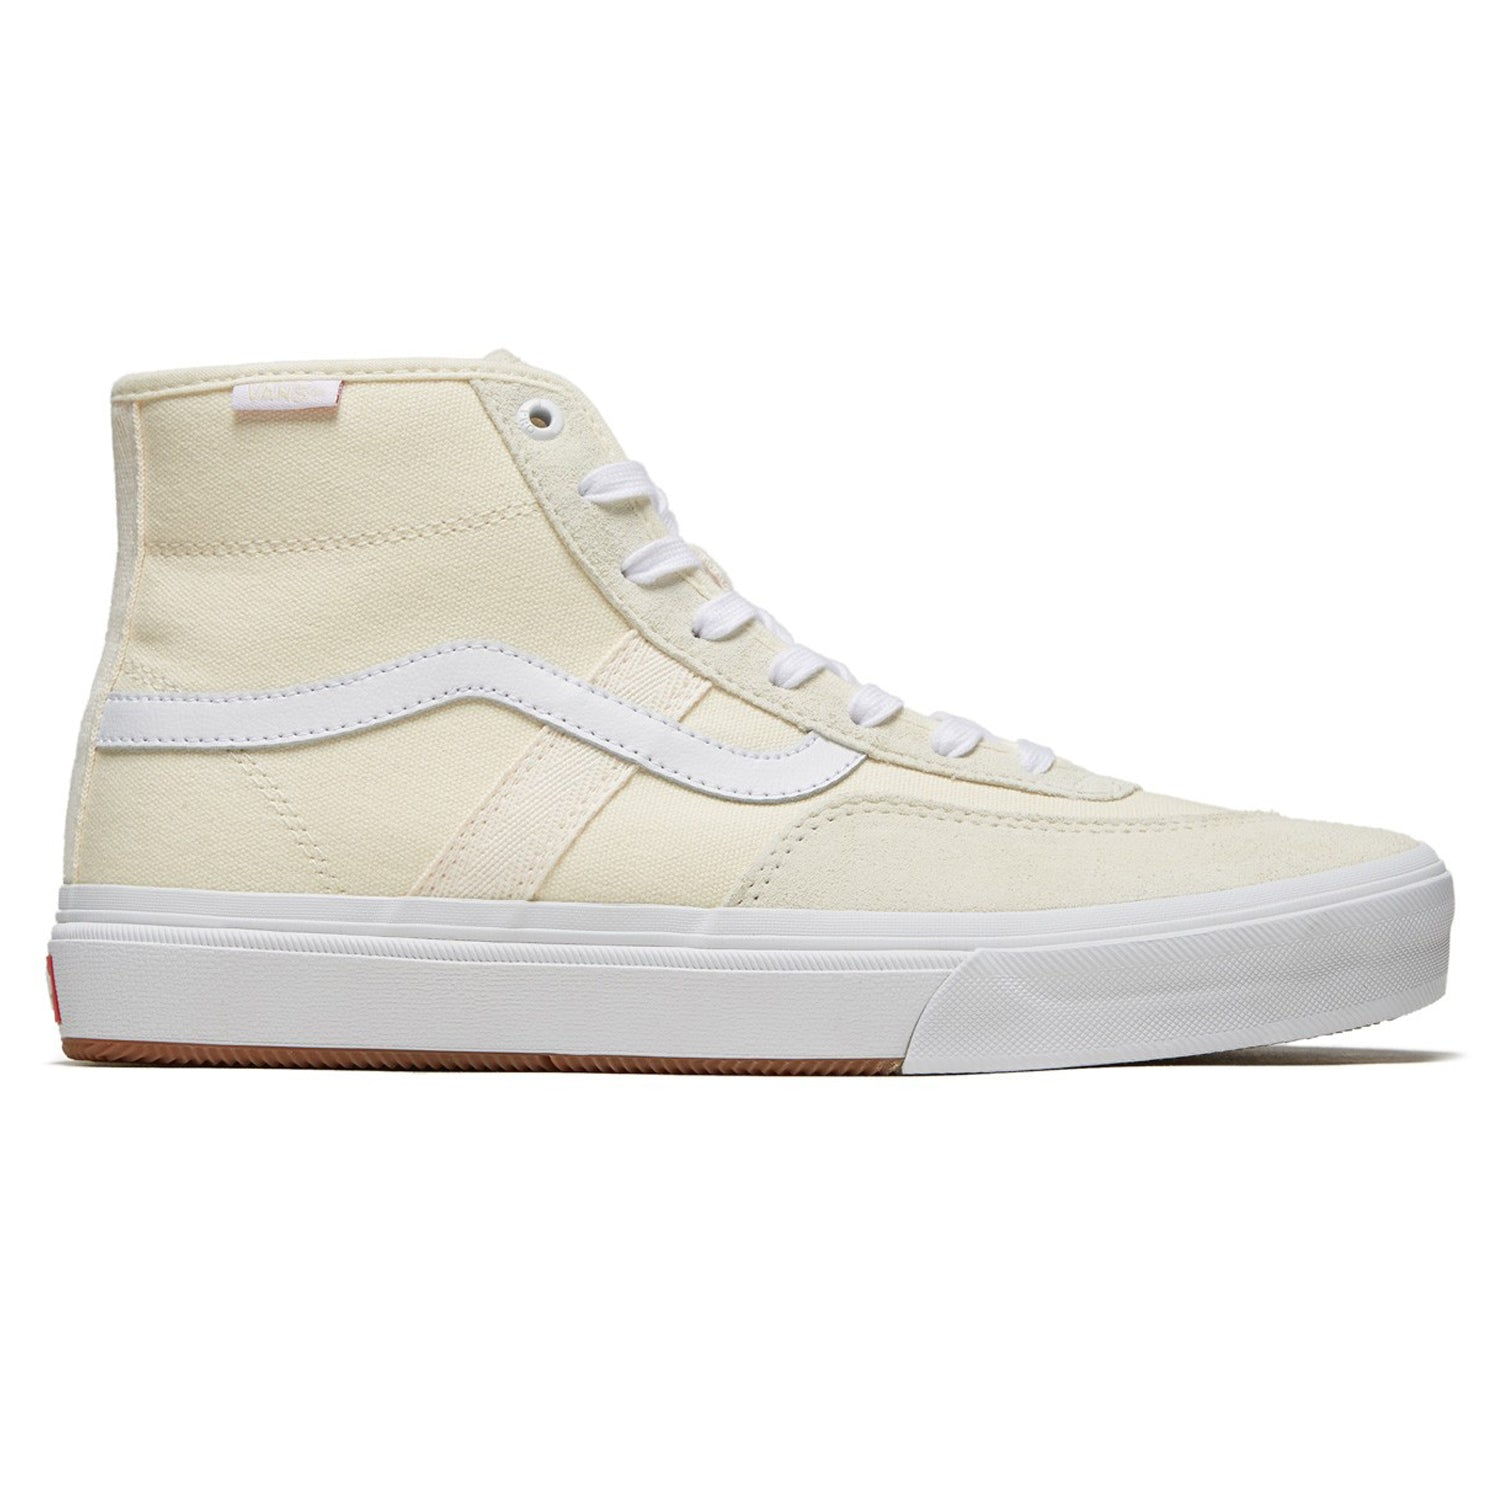 Vans Crockett High Pro Antique/White